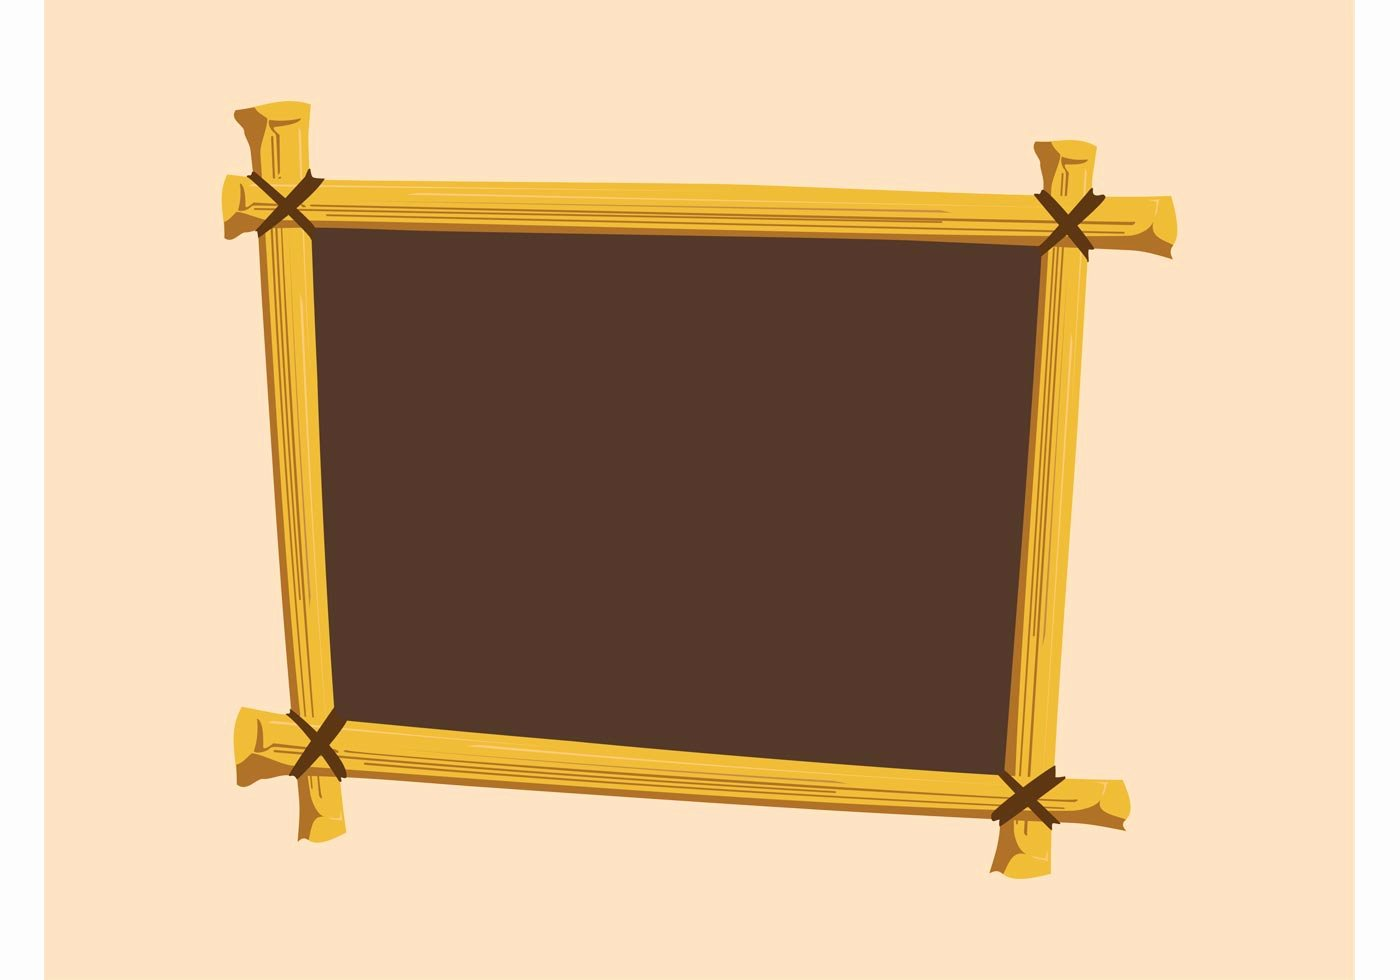 Picture Frame Vector Lovely Wooden Frame Download Free Vector Art Stock Graphics